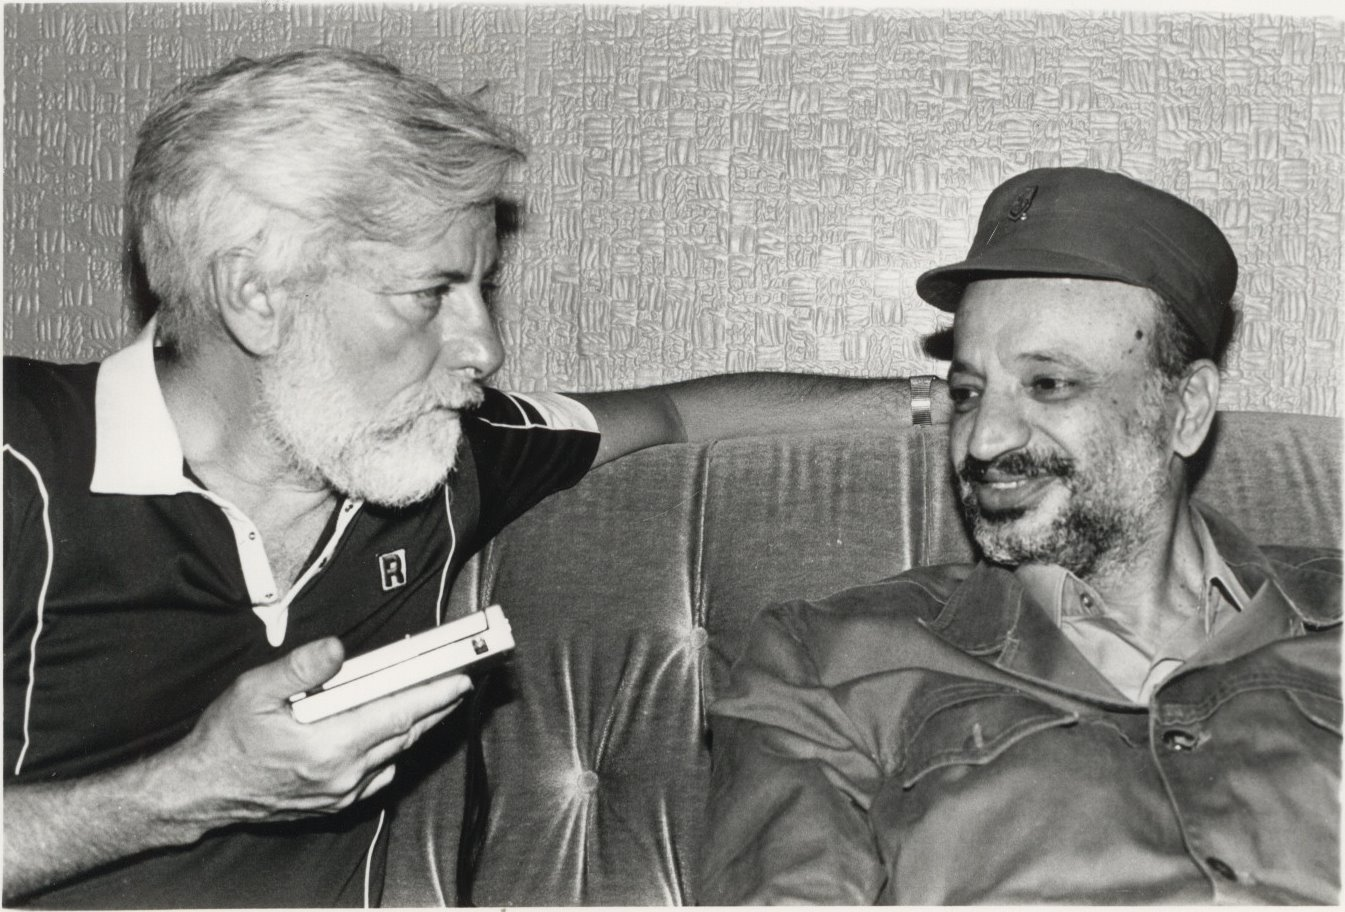 Meeting Arafat in Beirut during the siege, 1982